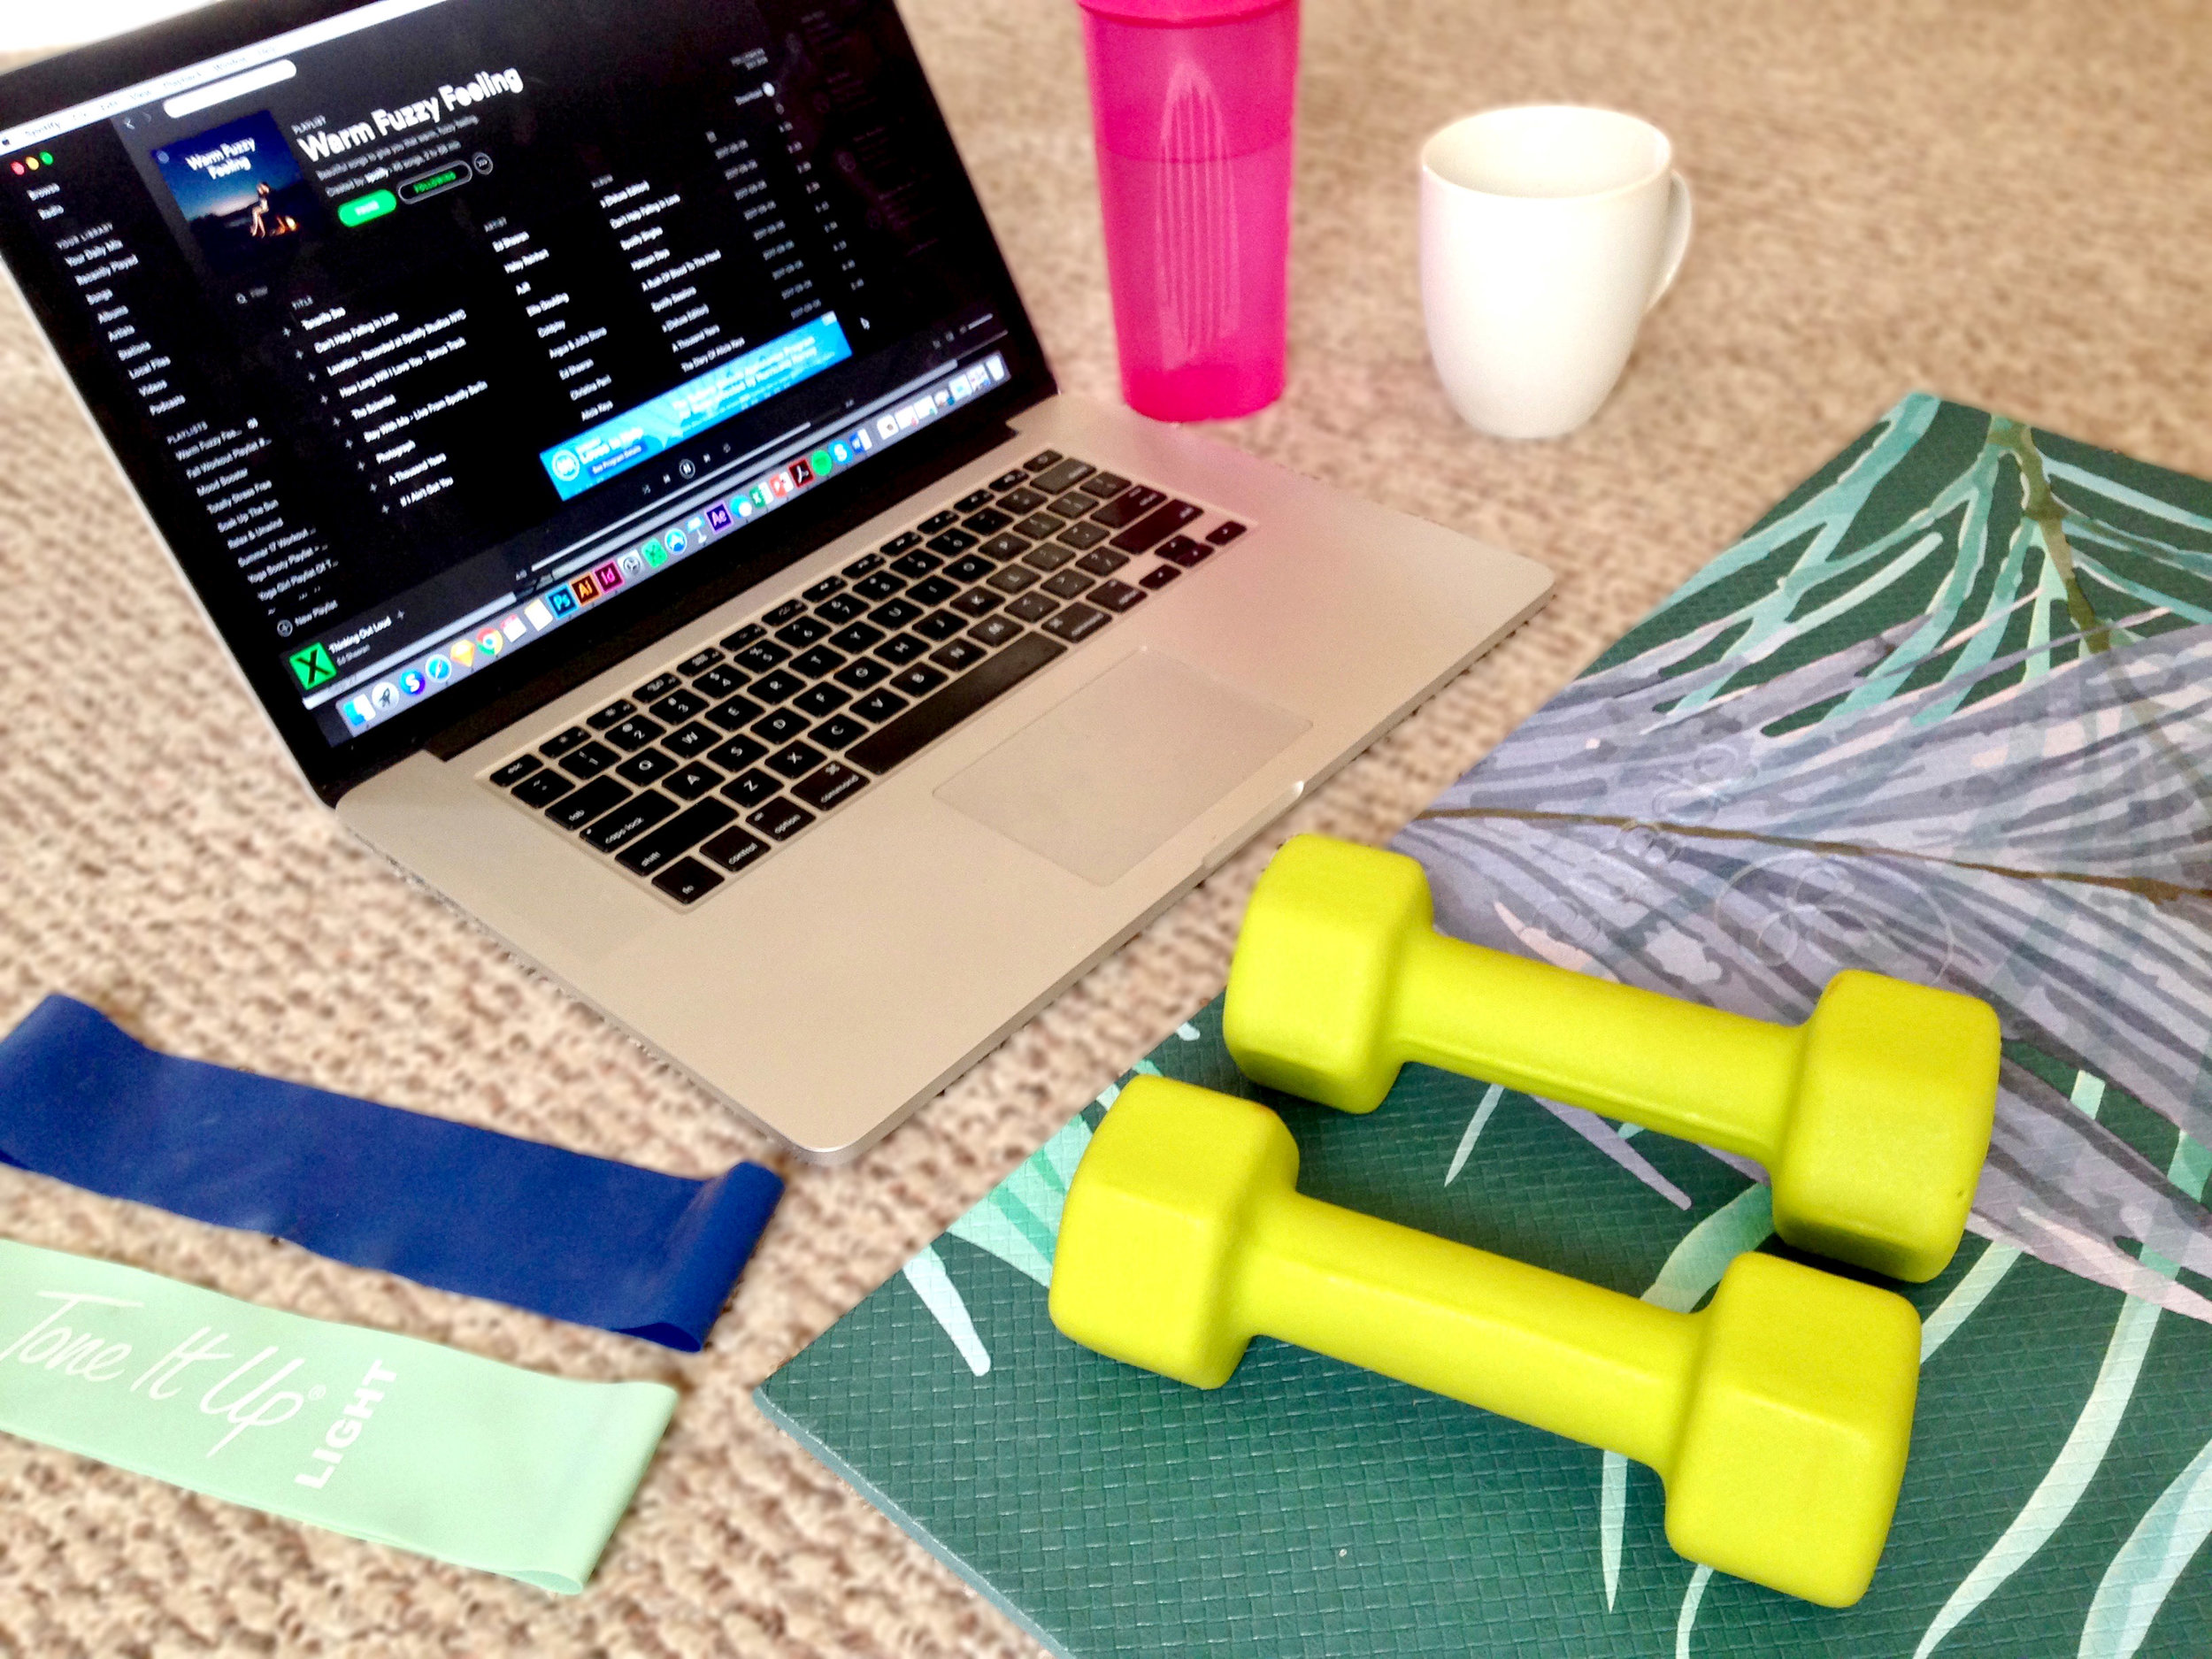 Morning set up for my workout.